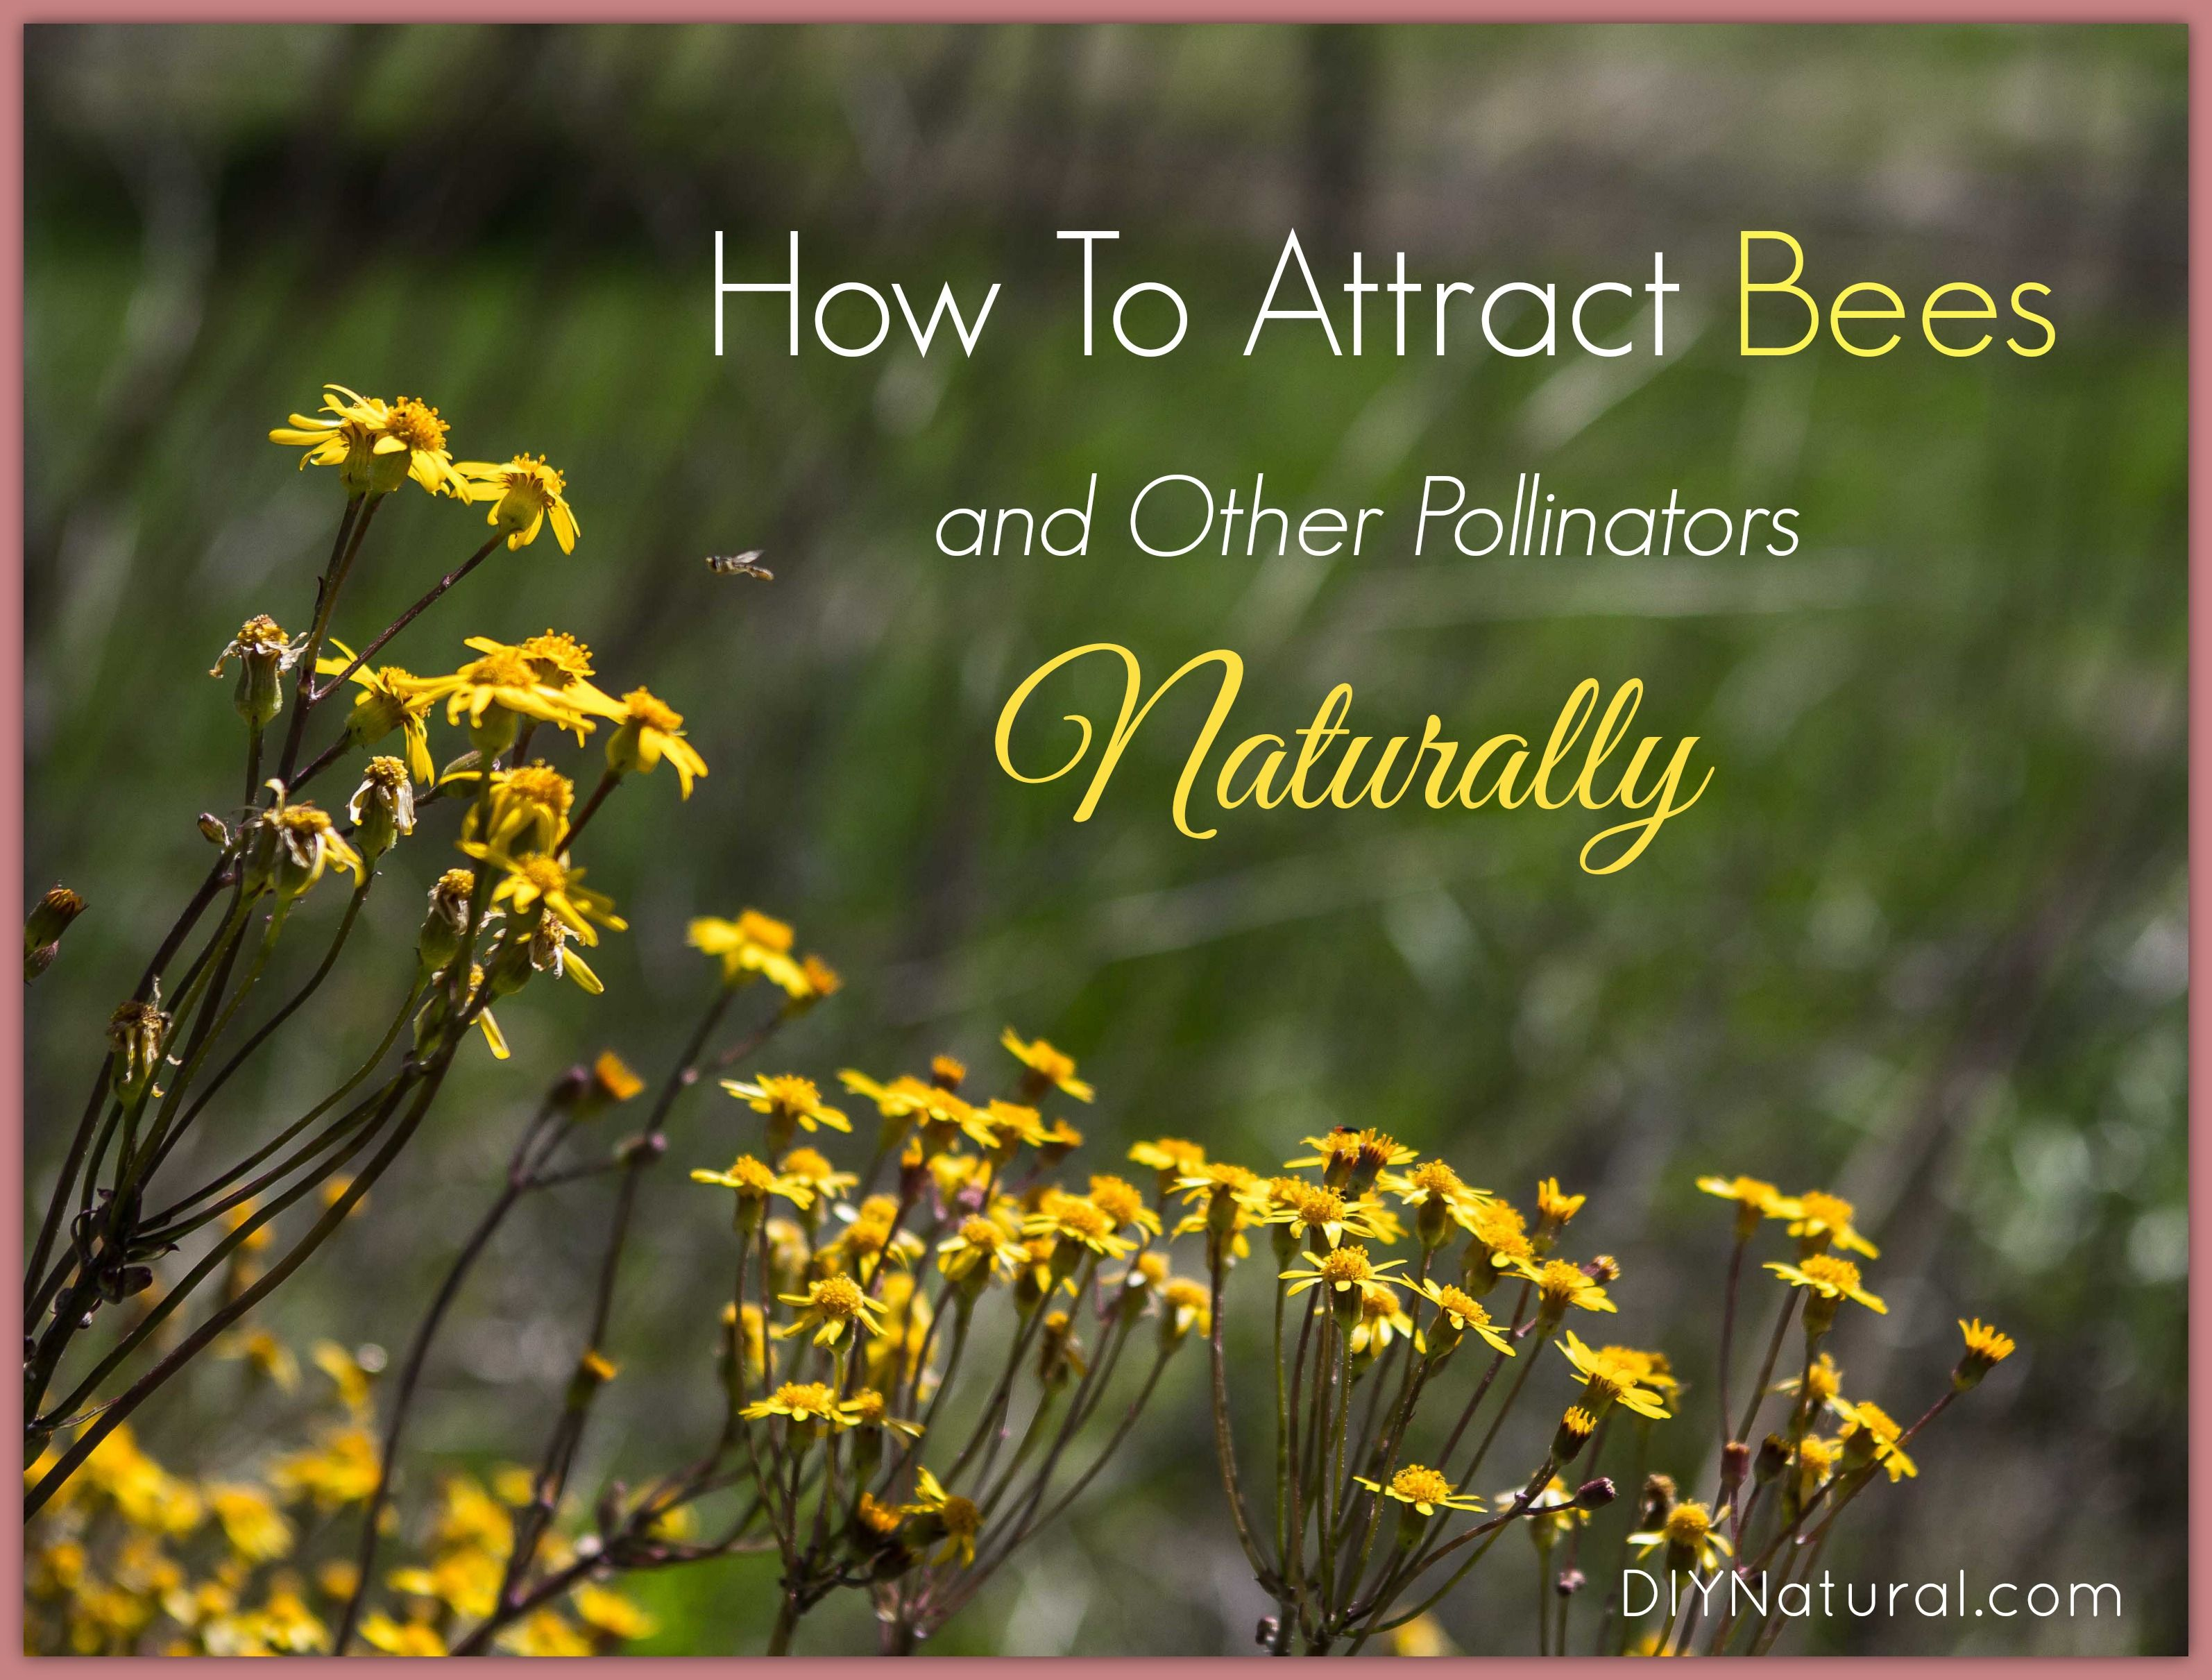 Learn how to attract bees and other pollinators naturally! It can be as simple as avoiding pesticides and planting flowers but there are many others ways too.